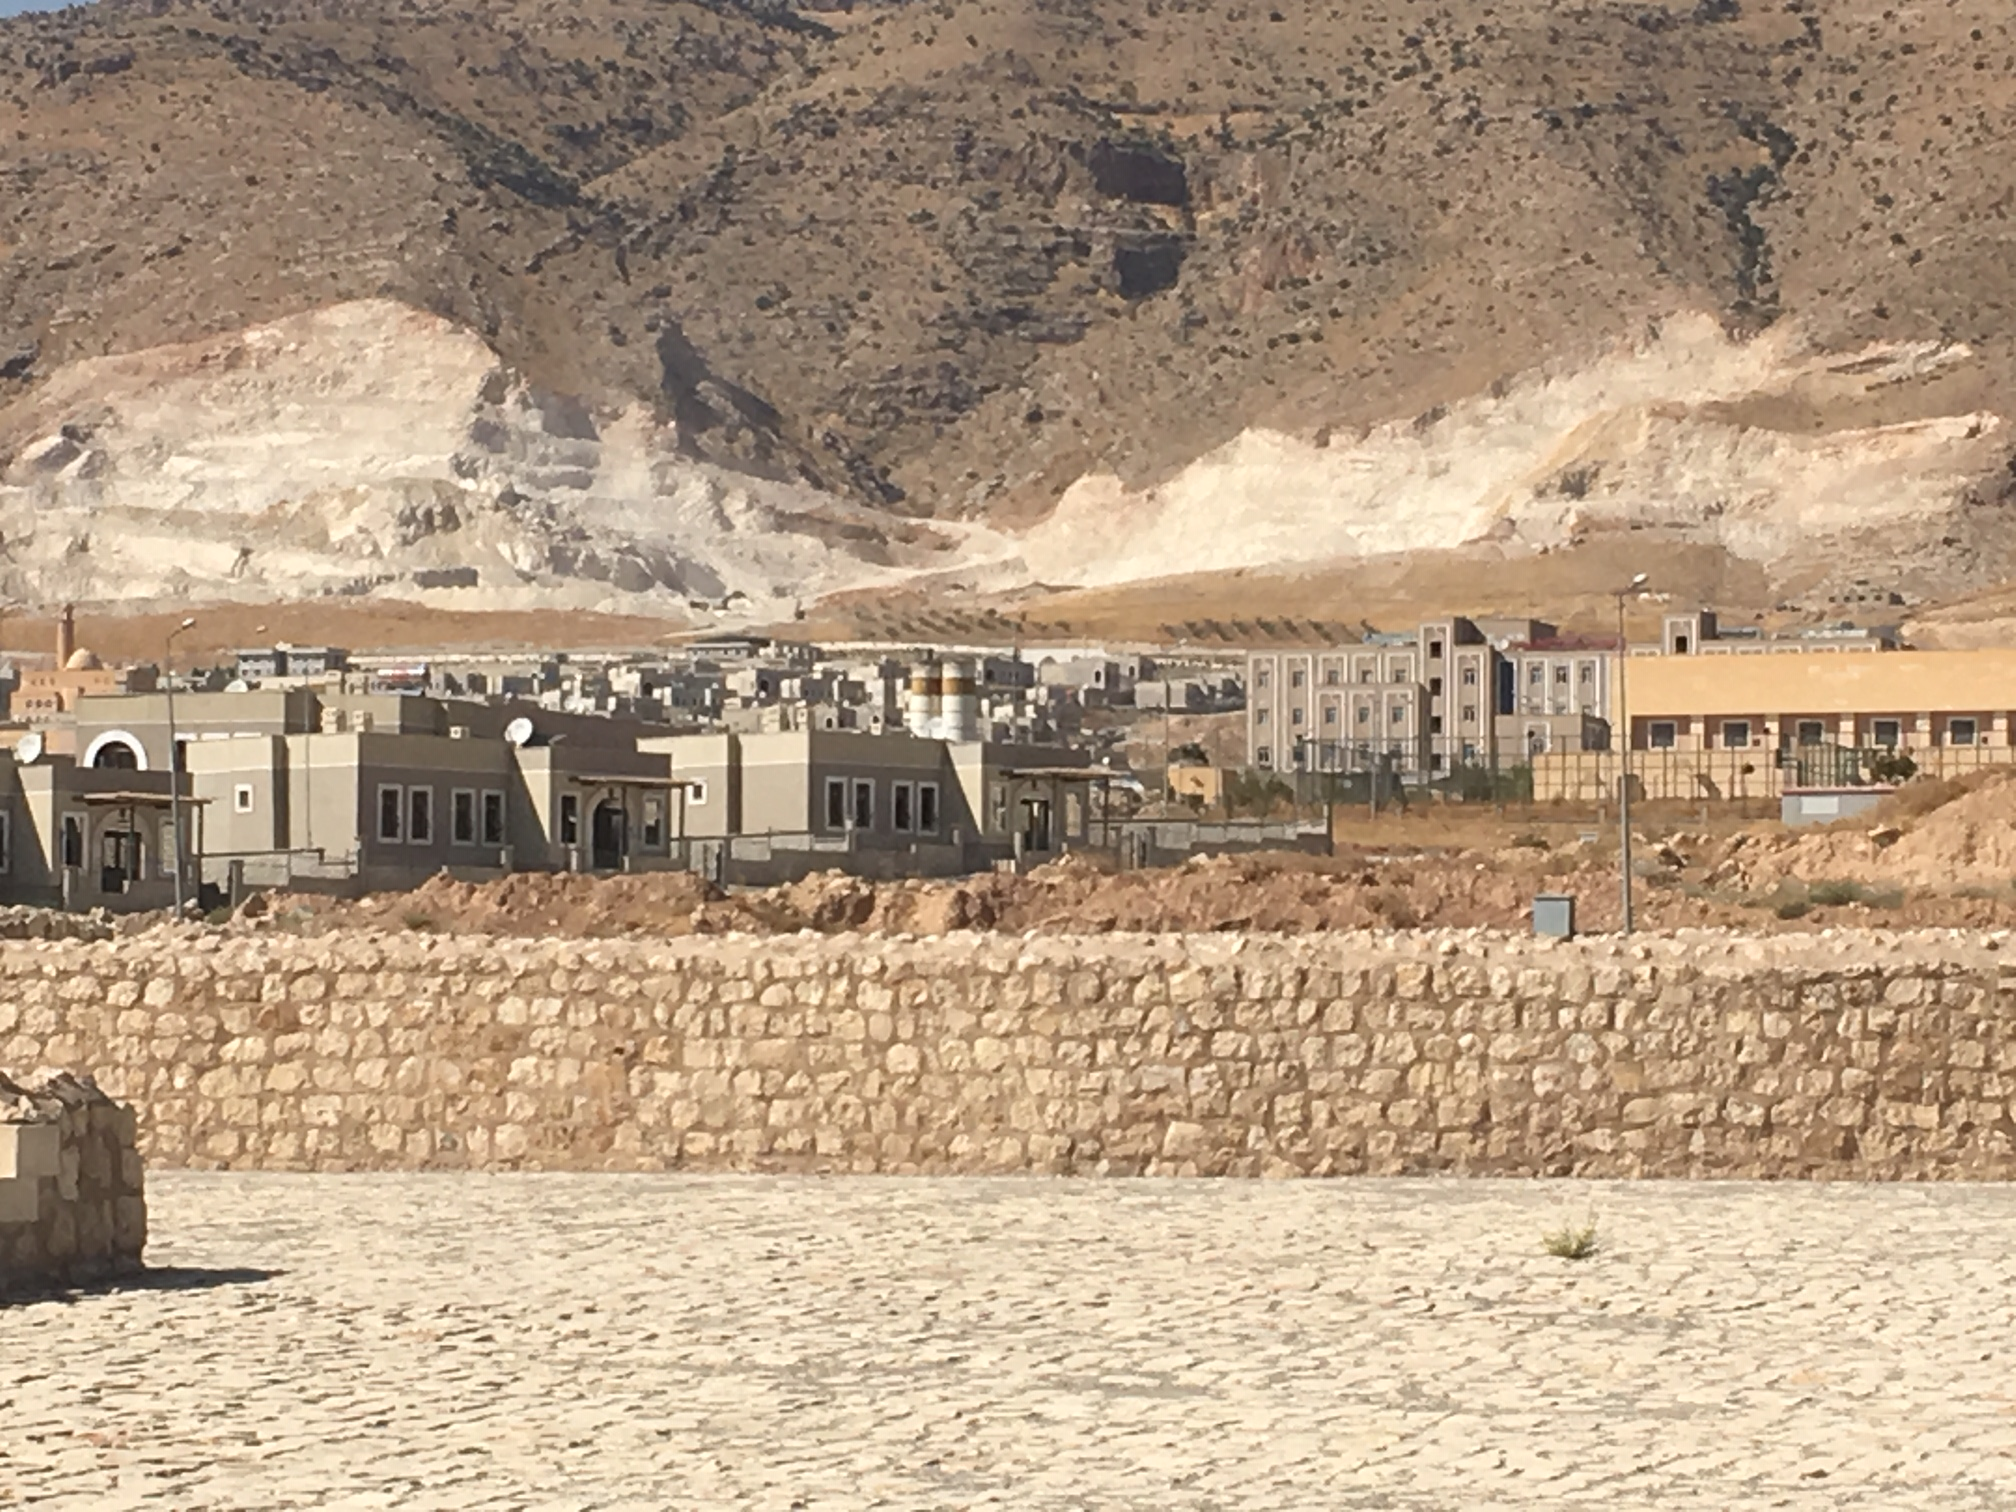 View of New Hasankef. 700 houses were constructed, on barren soil, in the blazing sun. © Riverwatch